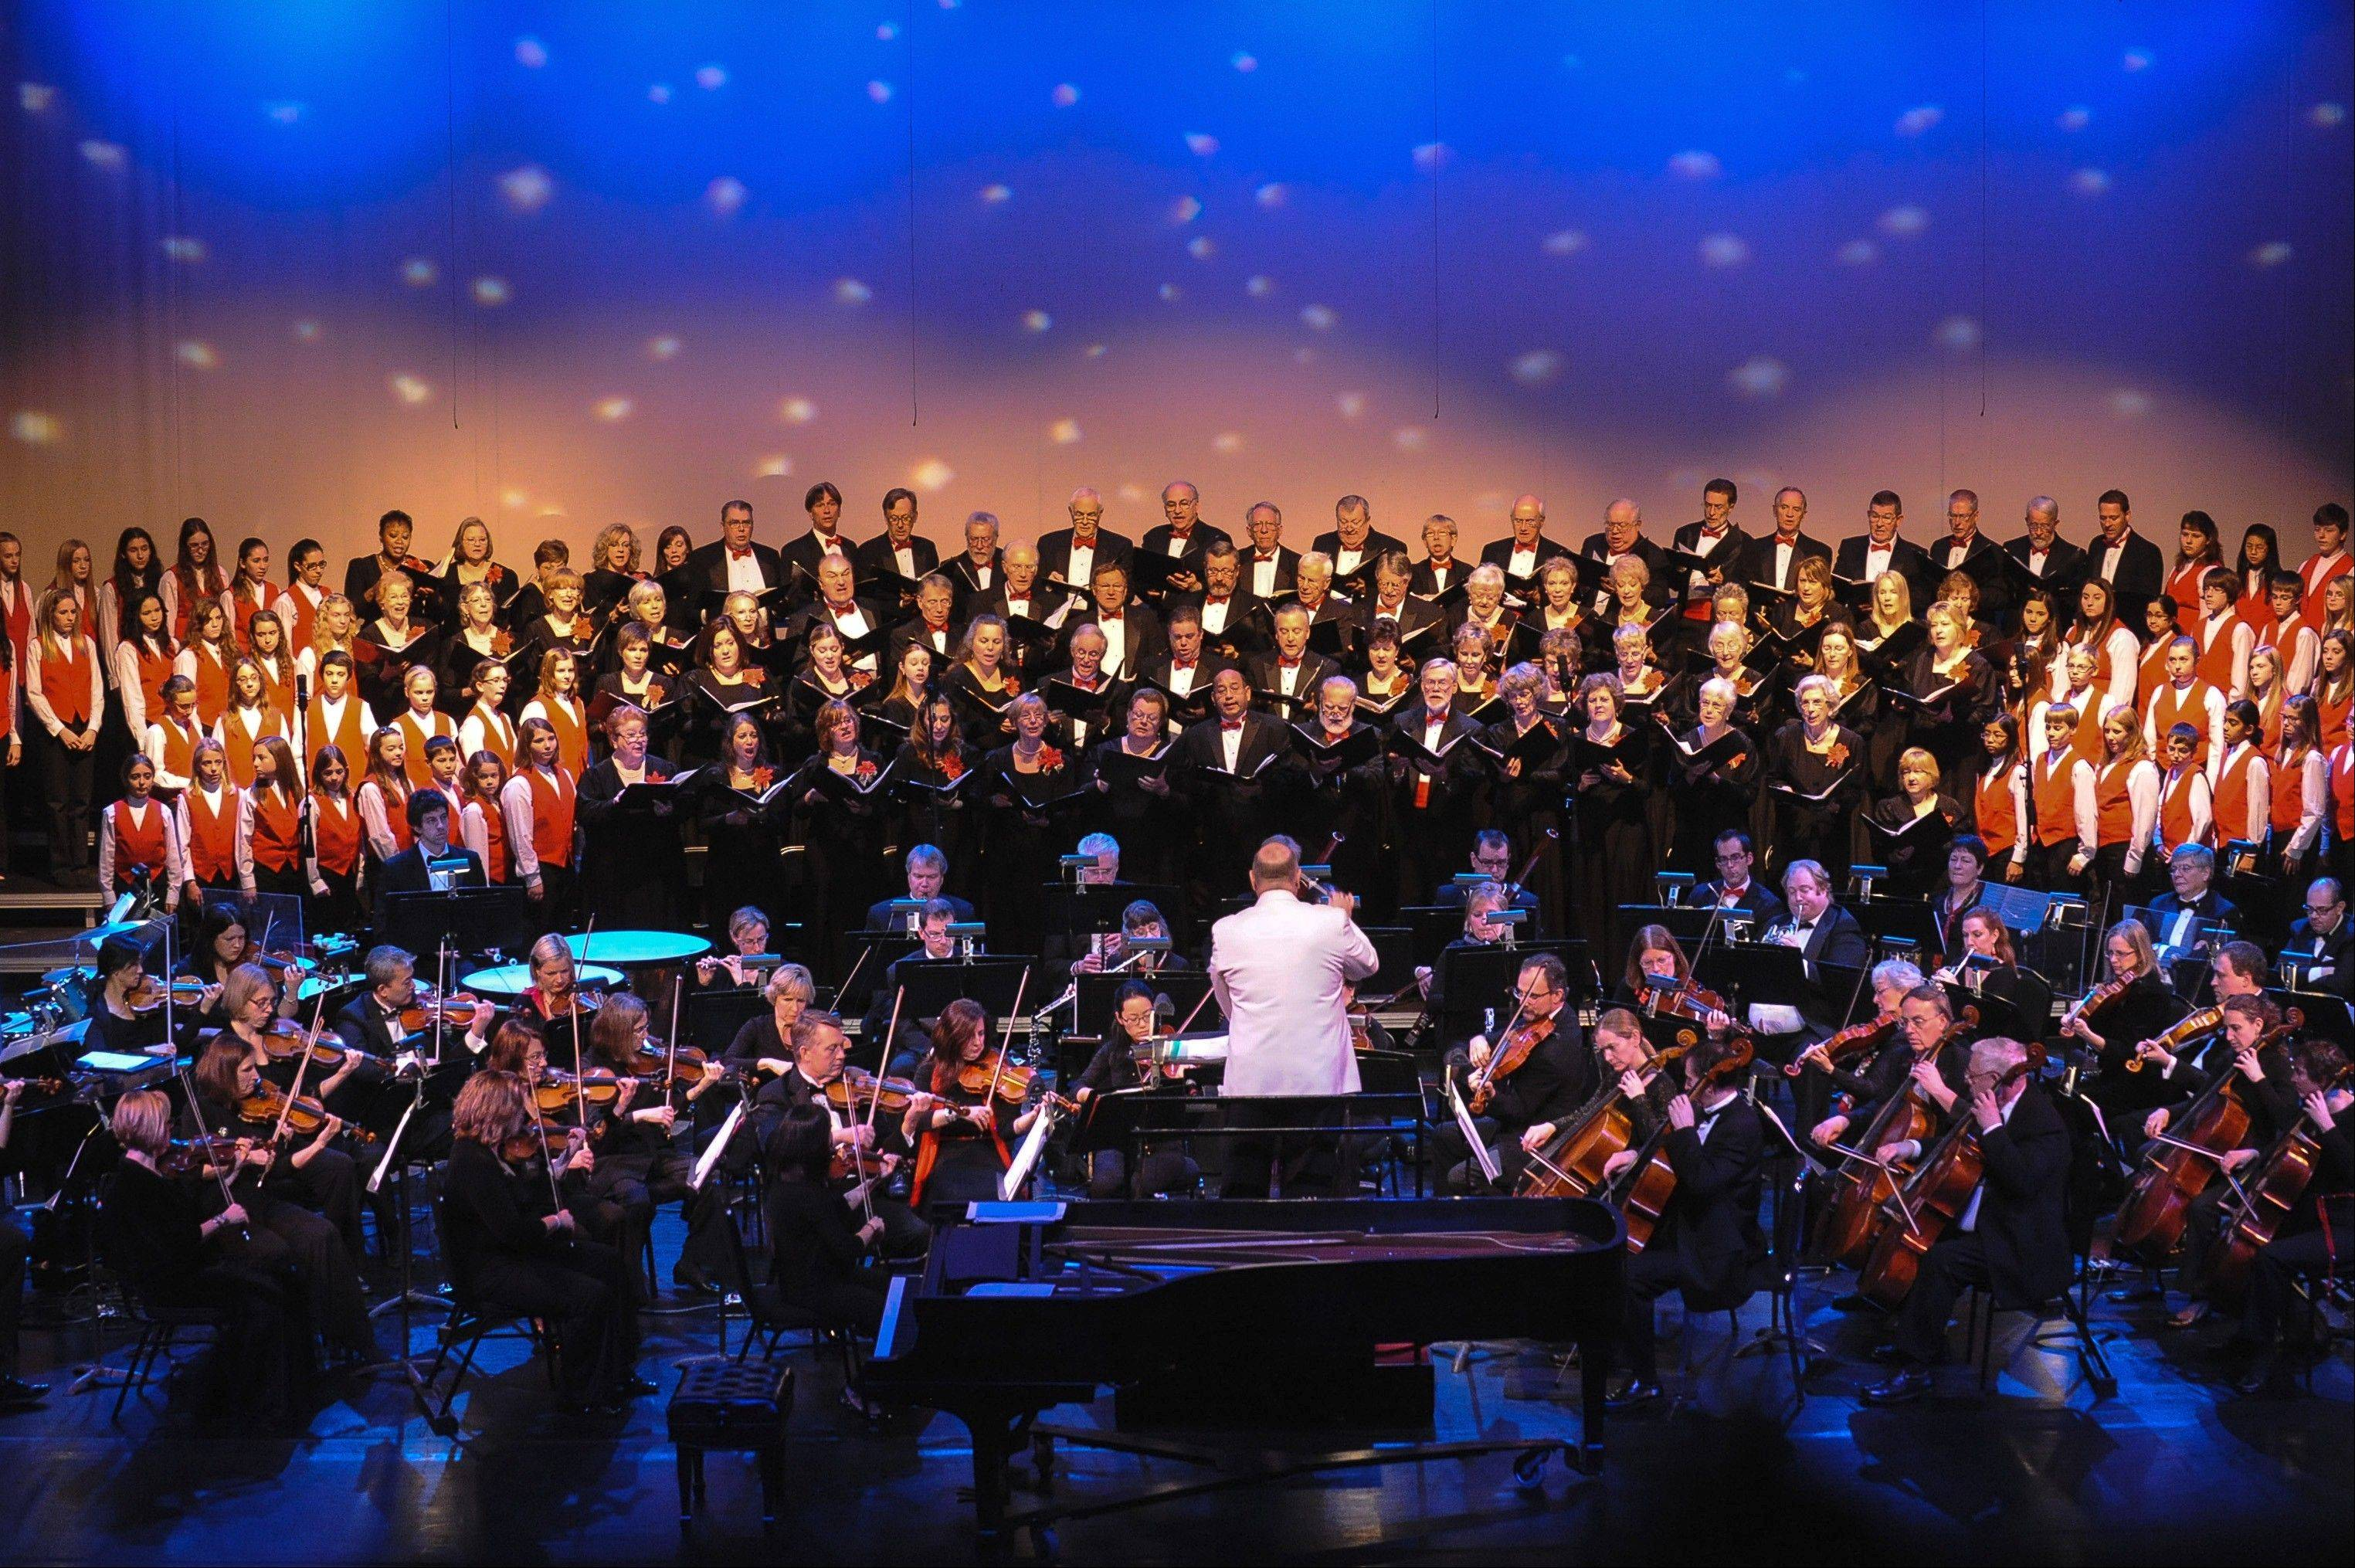 The orchestra will join with the Elgin Choral Union and Elgin Children's Chorus to bring holiday favorites to the audience.